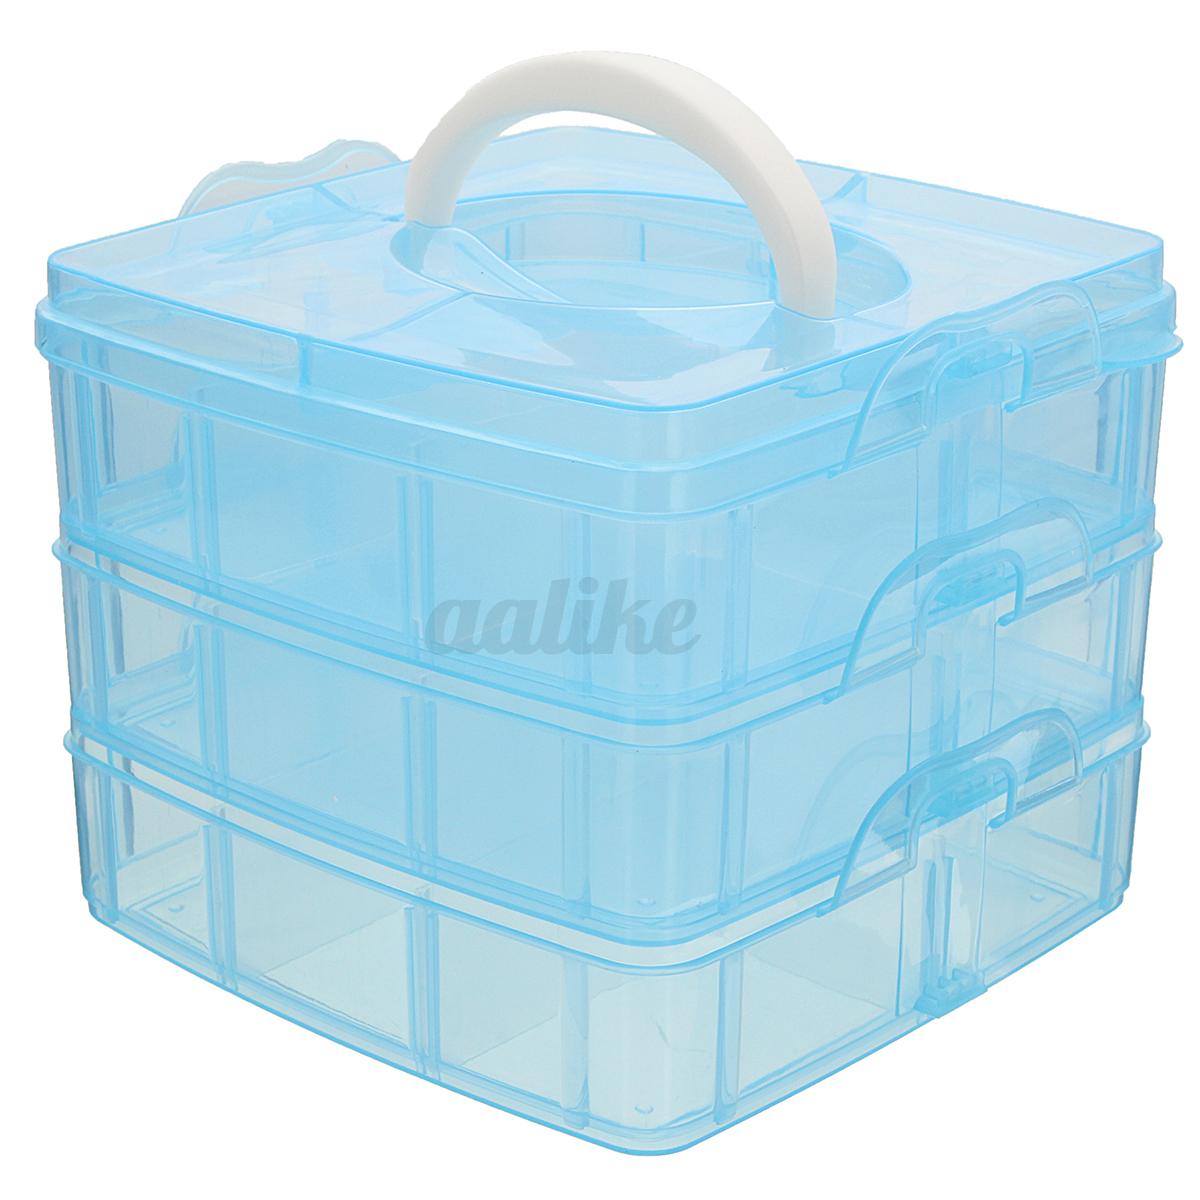 new clear plastic jewelry bead storage box container